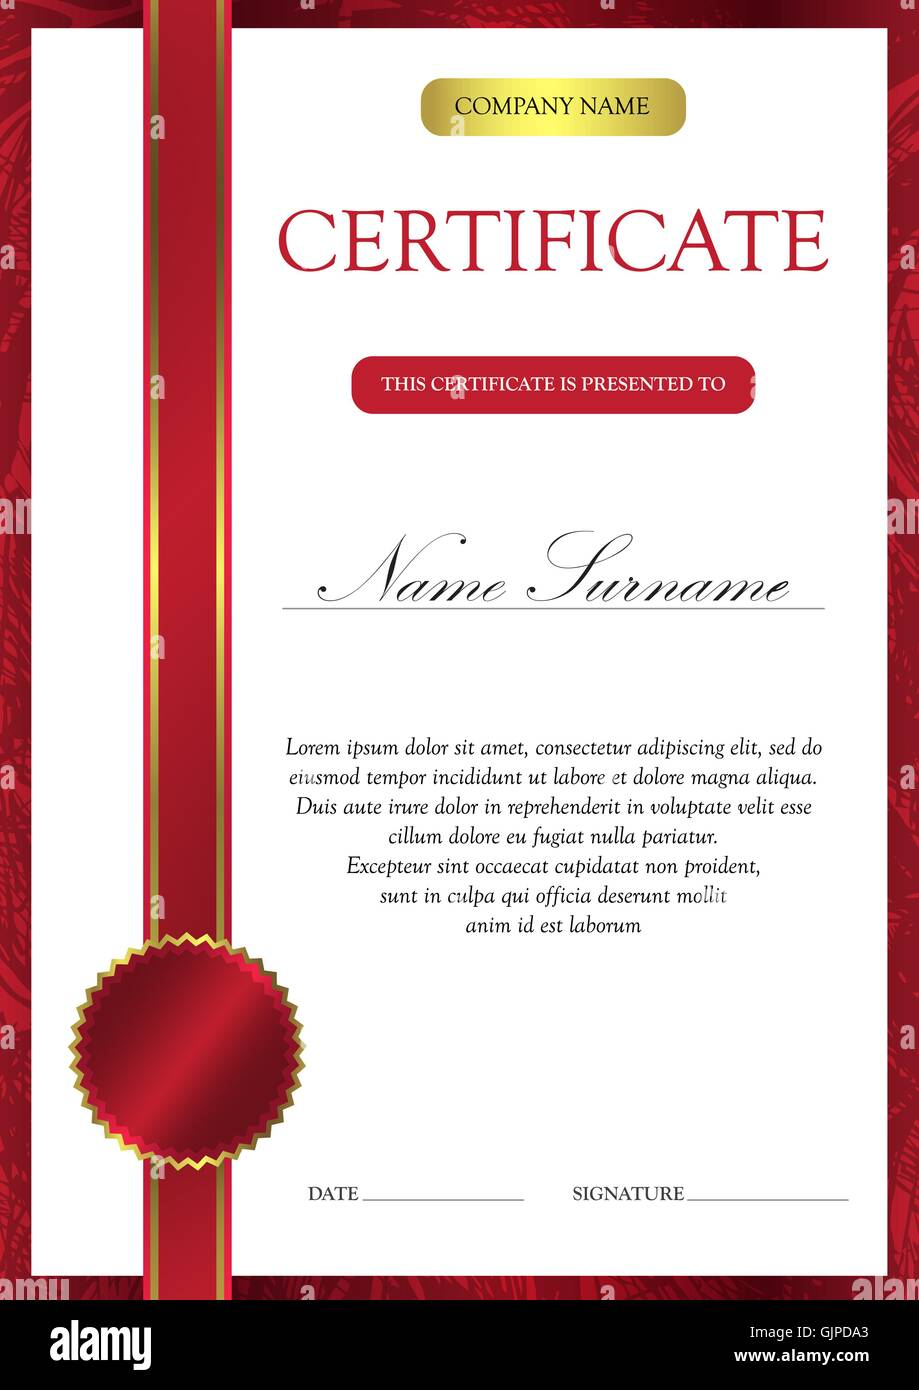 Diploma Template   Vertical Red Certificate And Diploma Template With Vintage Floral